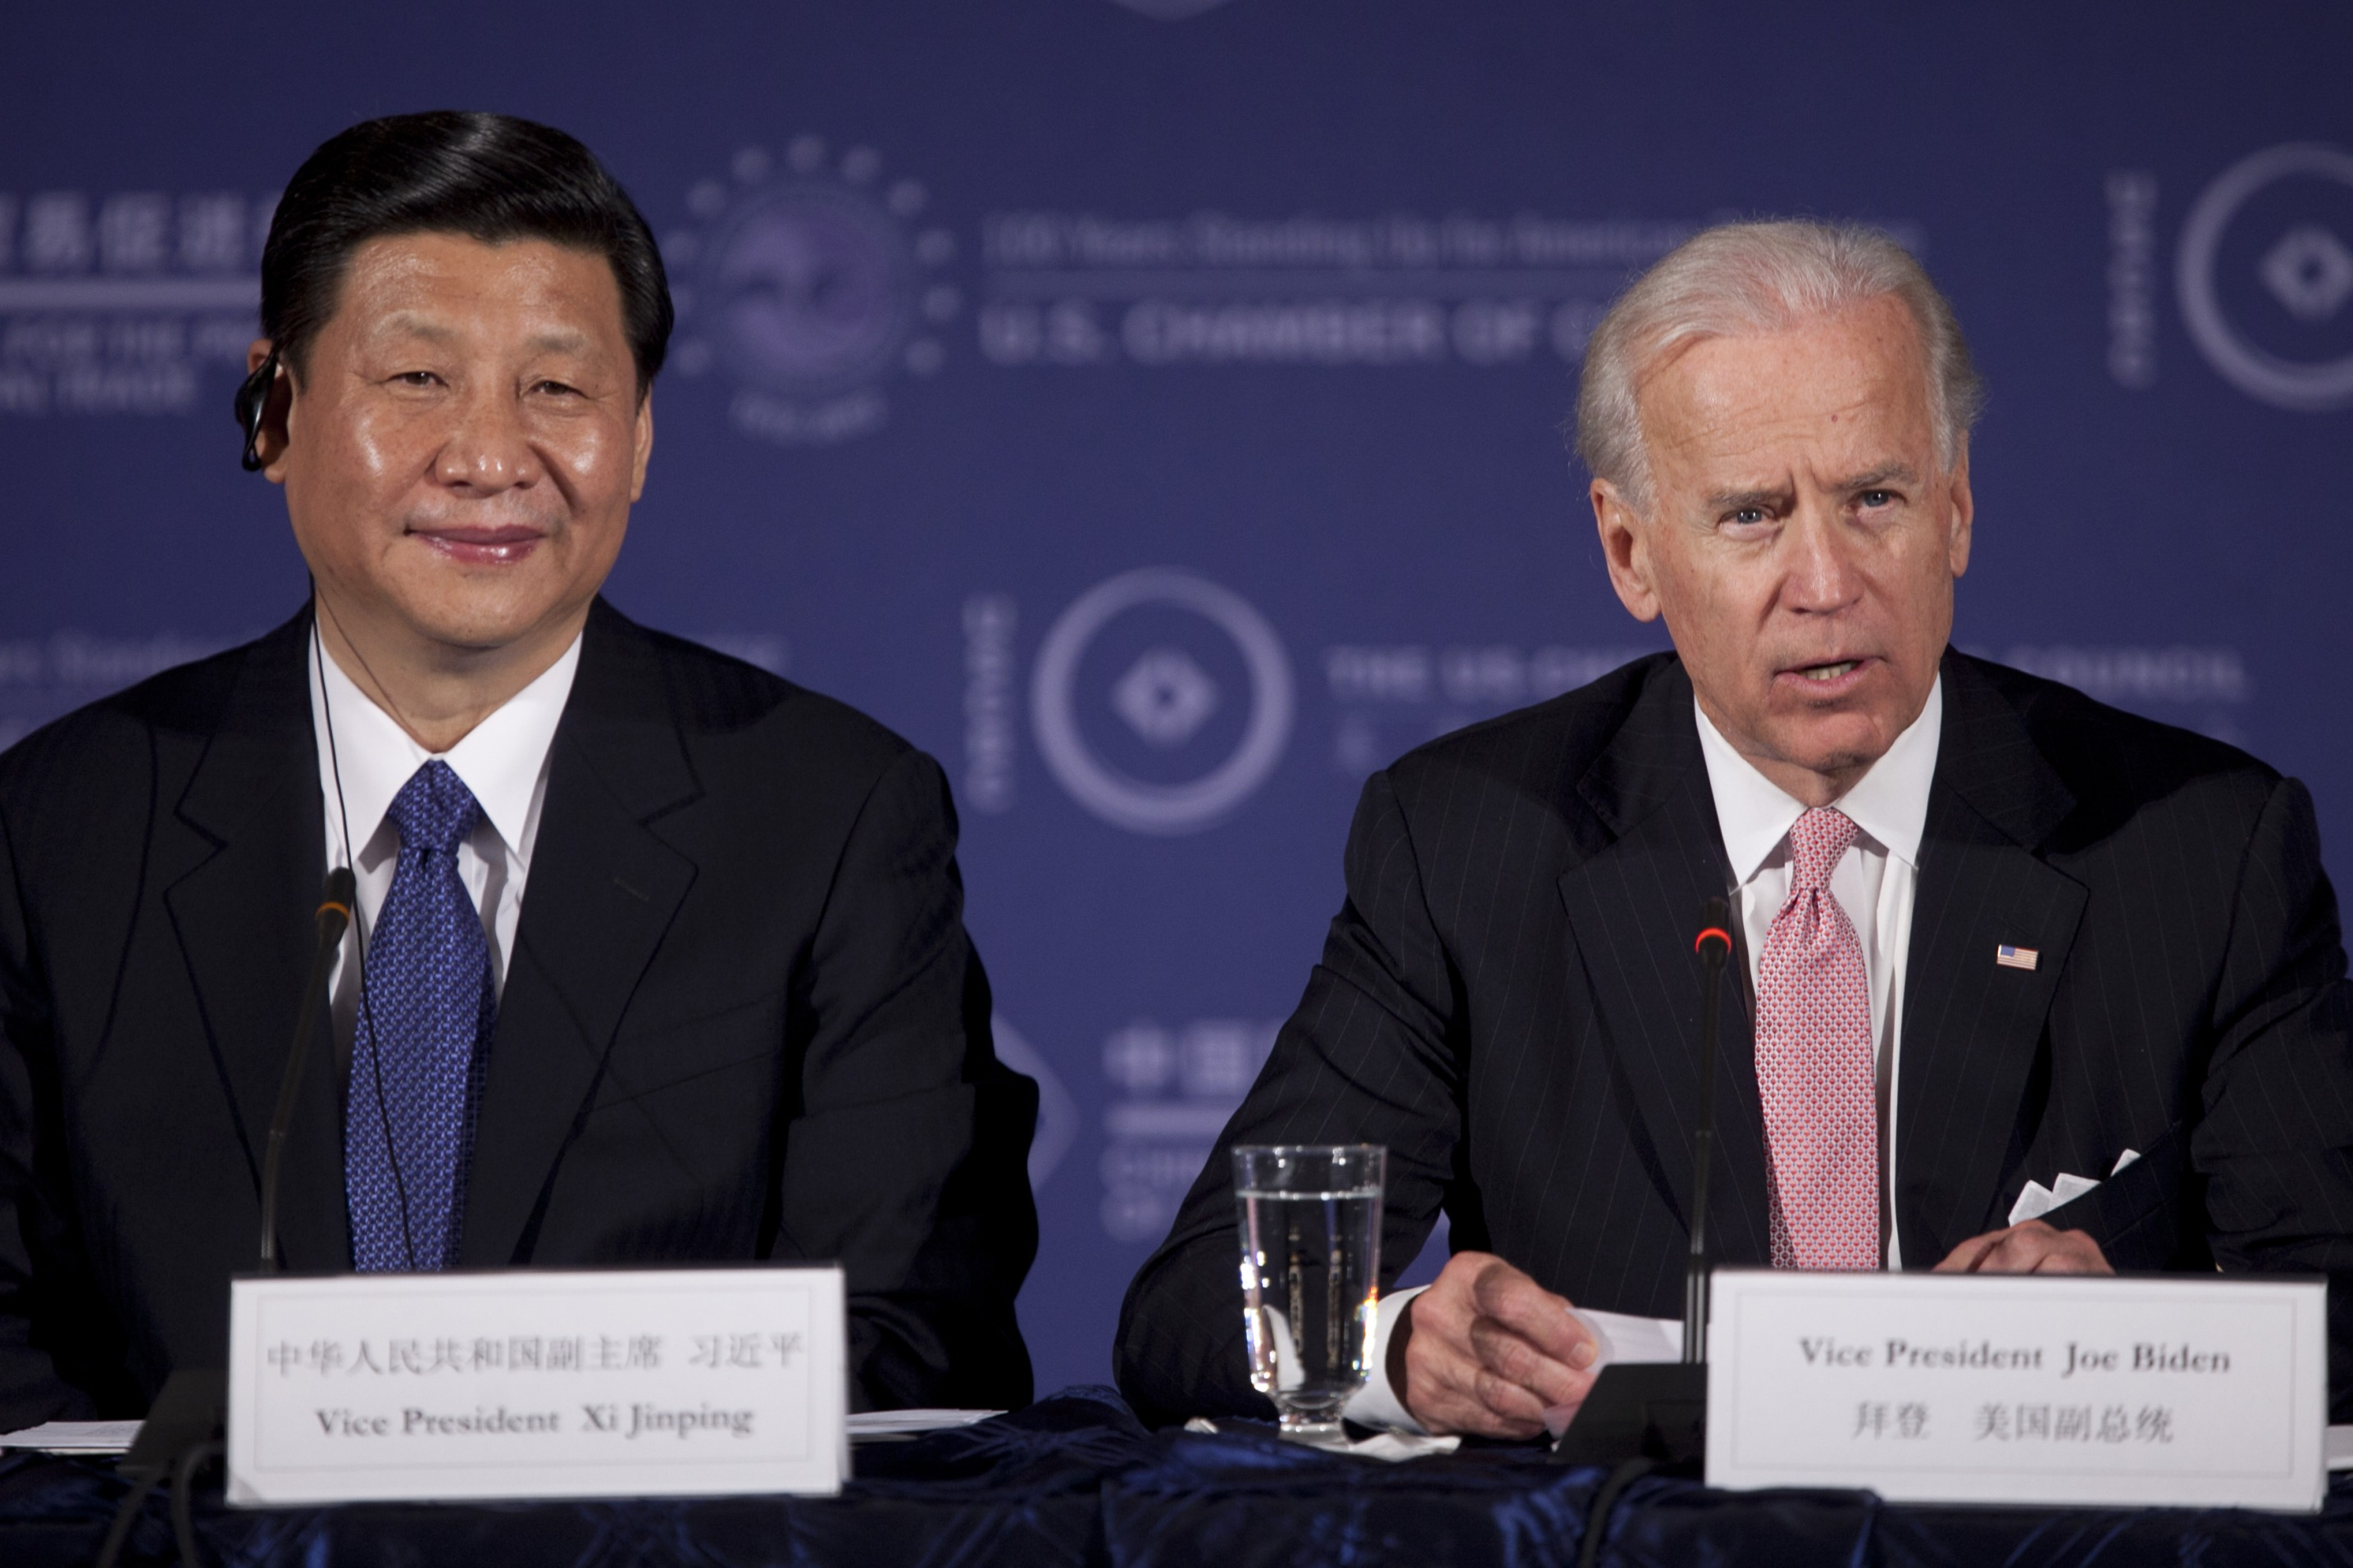 Xi Jinping and Joe Biden speak during the US-China Business Roundtable in 2012.